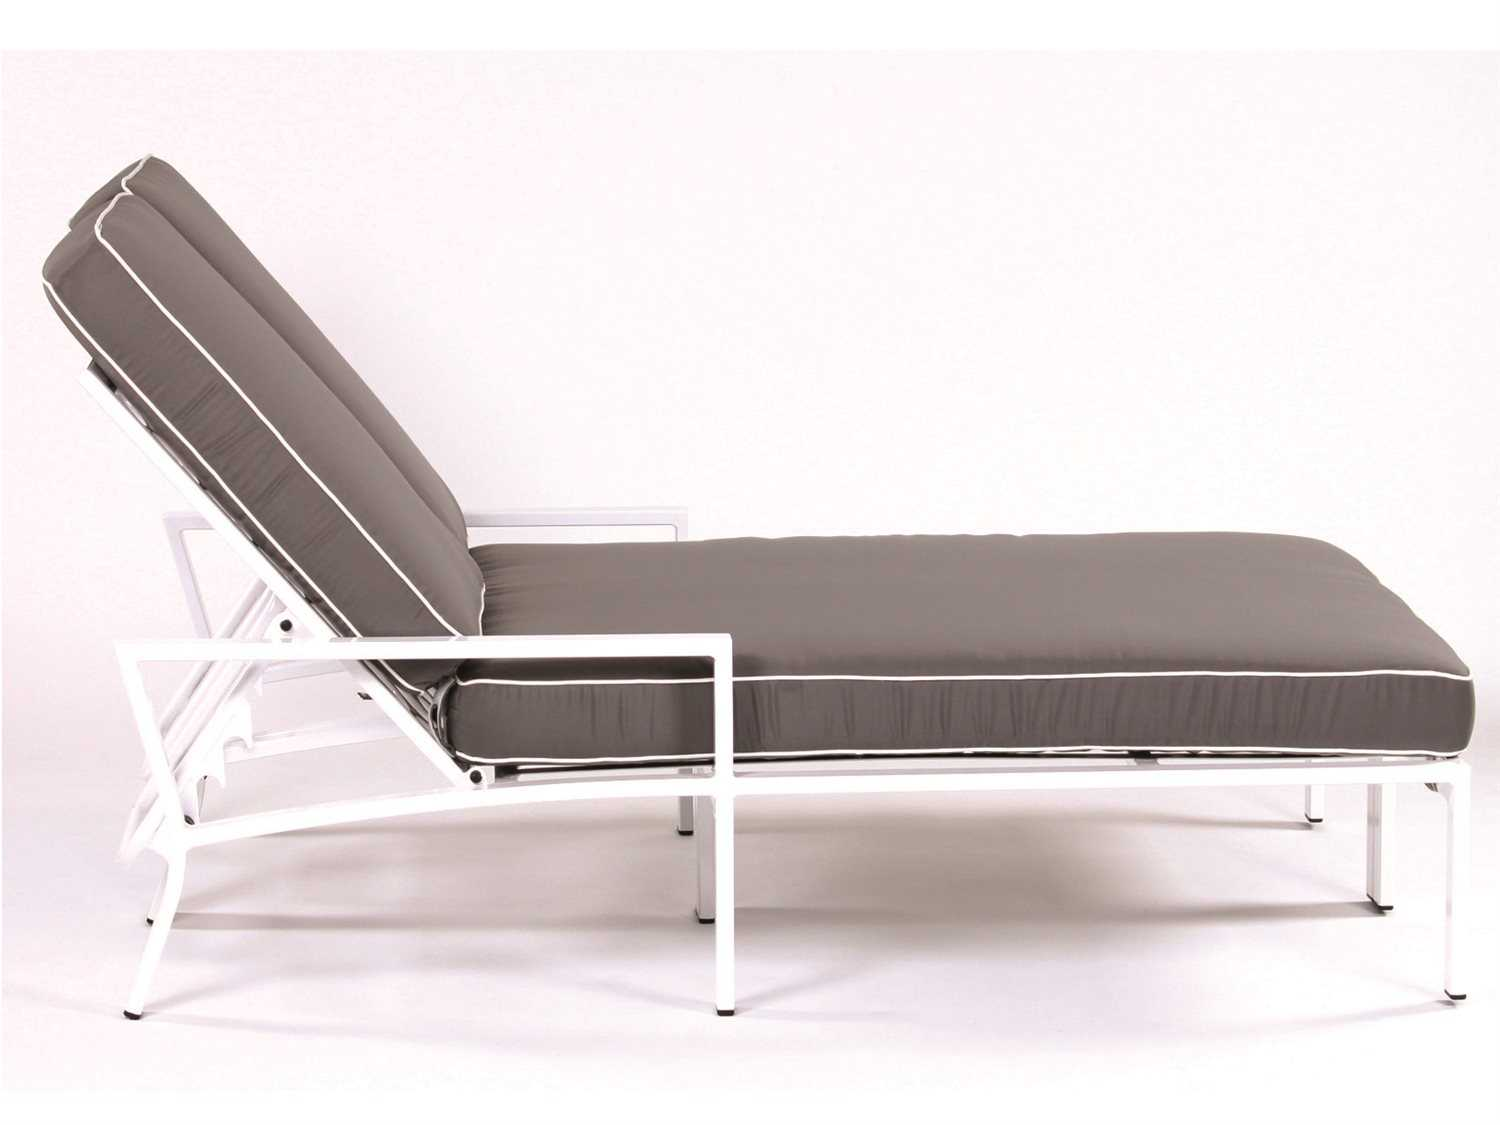 Koverton parkview cast aluminum double chaise lounge k for Cast aluminum chaise lounge